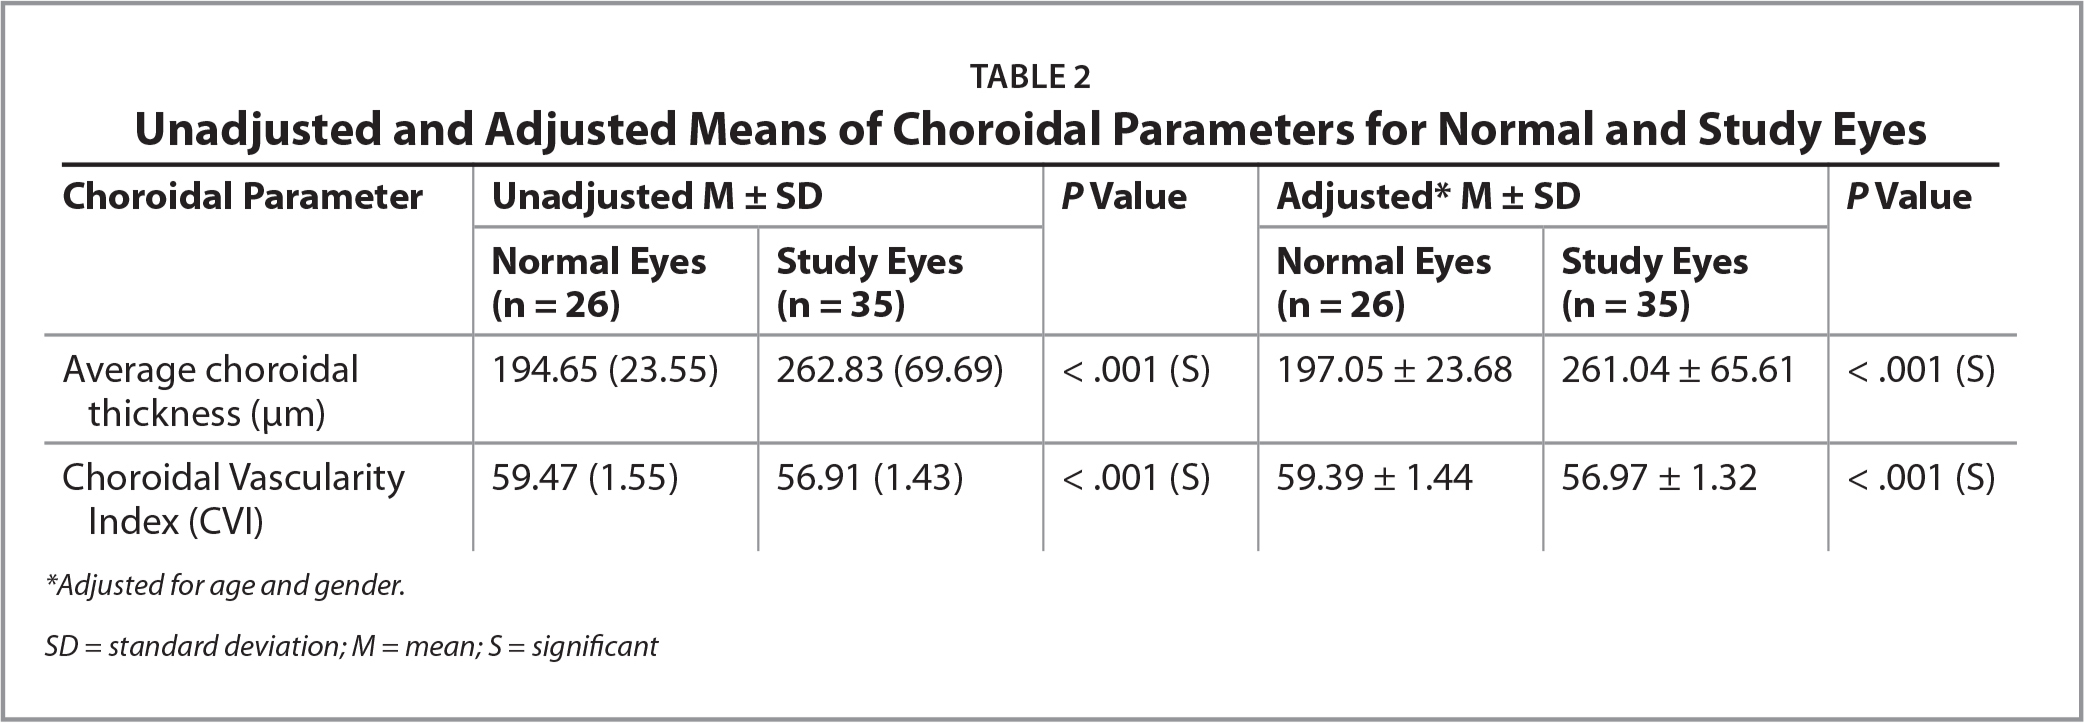 Unadjusted and Adjusted Means of Choroidal Parameters for Normal and Study Eyes